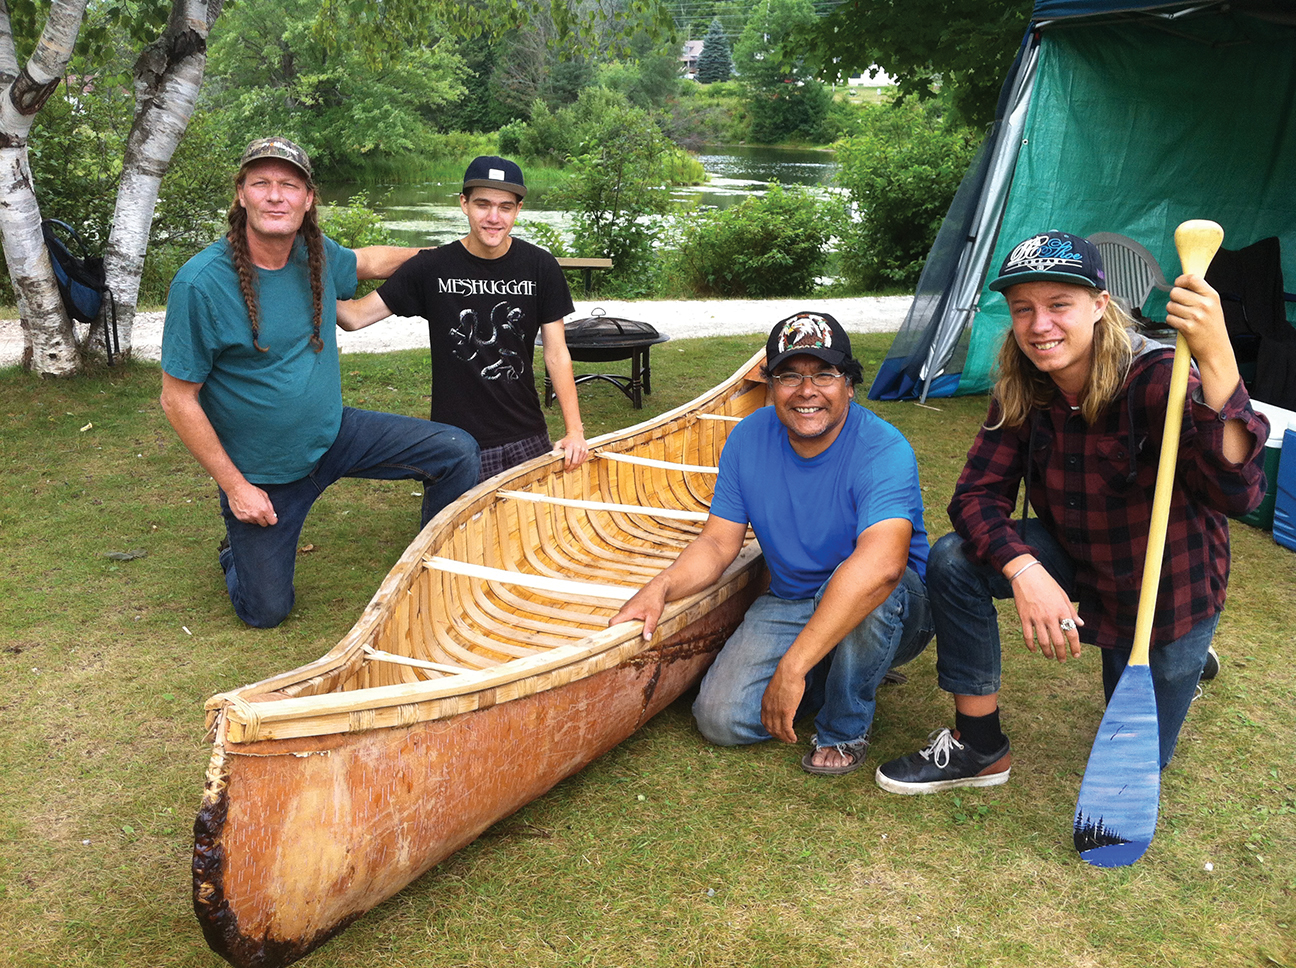 Stephen Hunter in Bancroft, at Millennium Park, prepares to test canoe built in 2016, as part of a cultural tourism project in partnership with the Town of Bancroft.